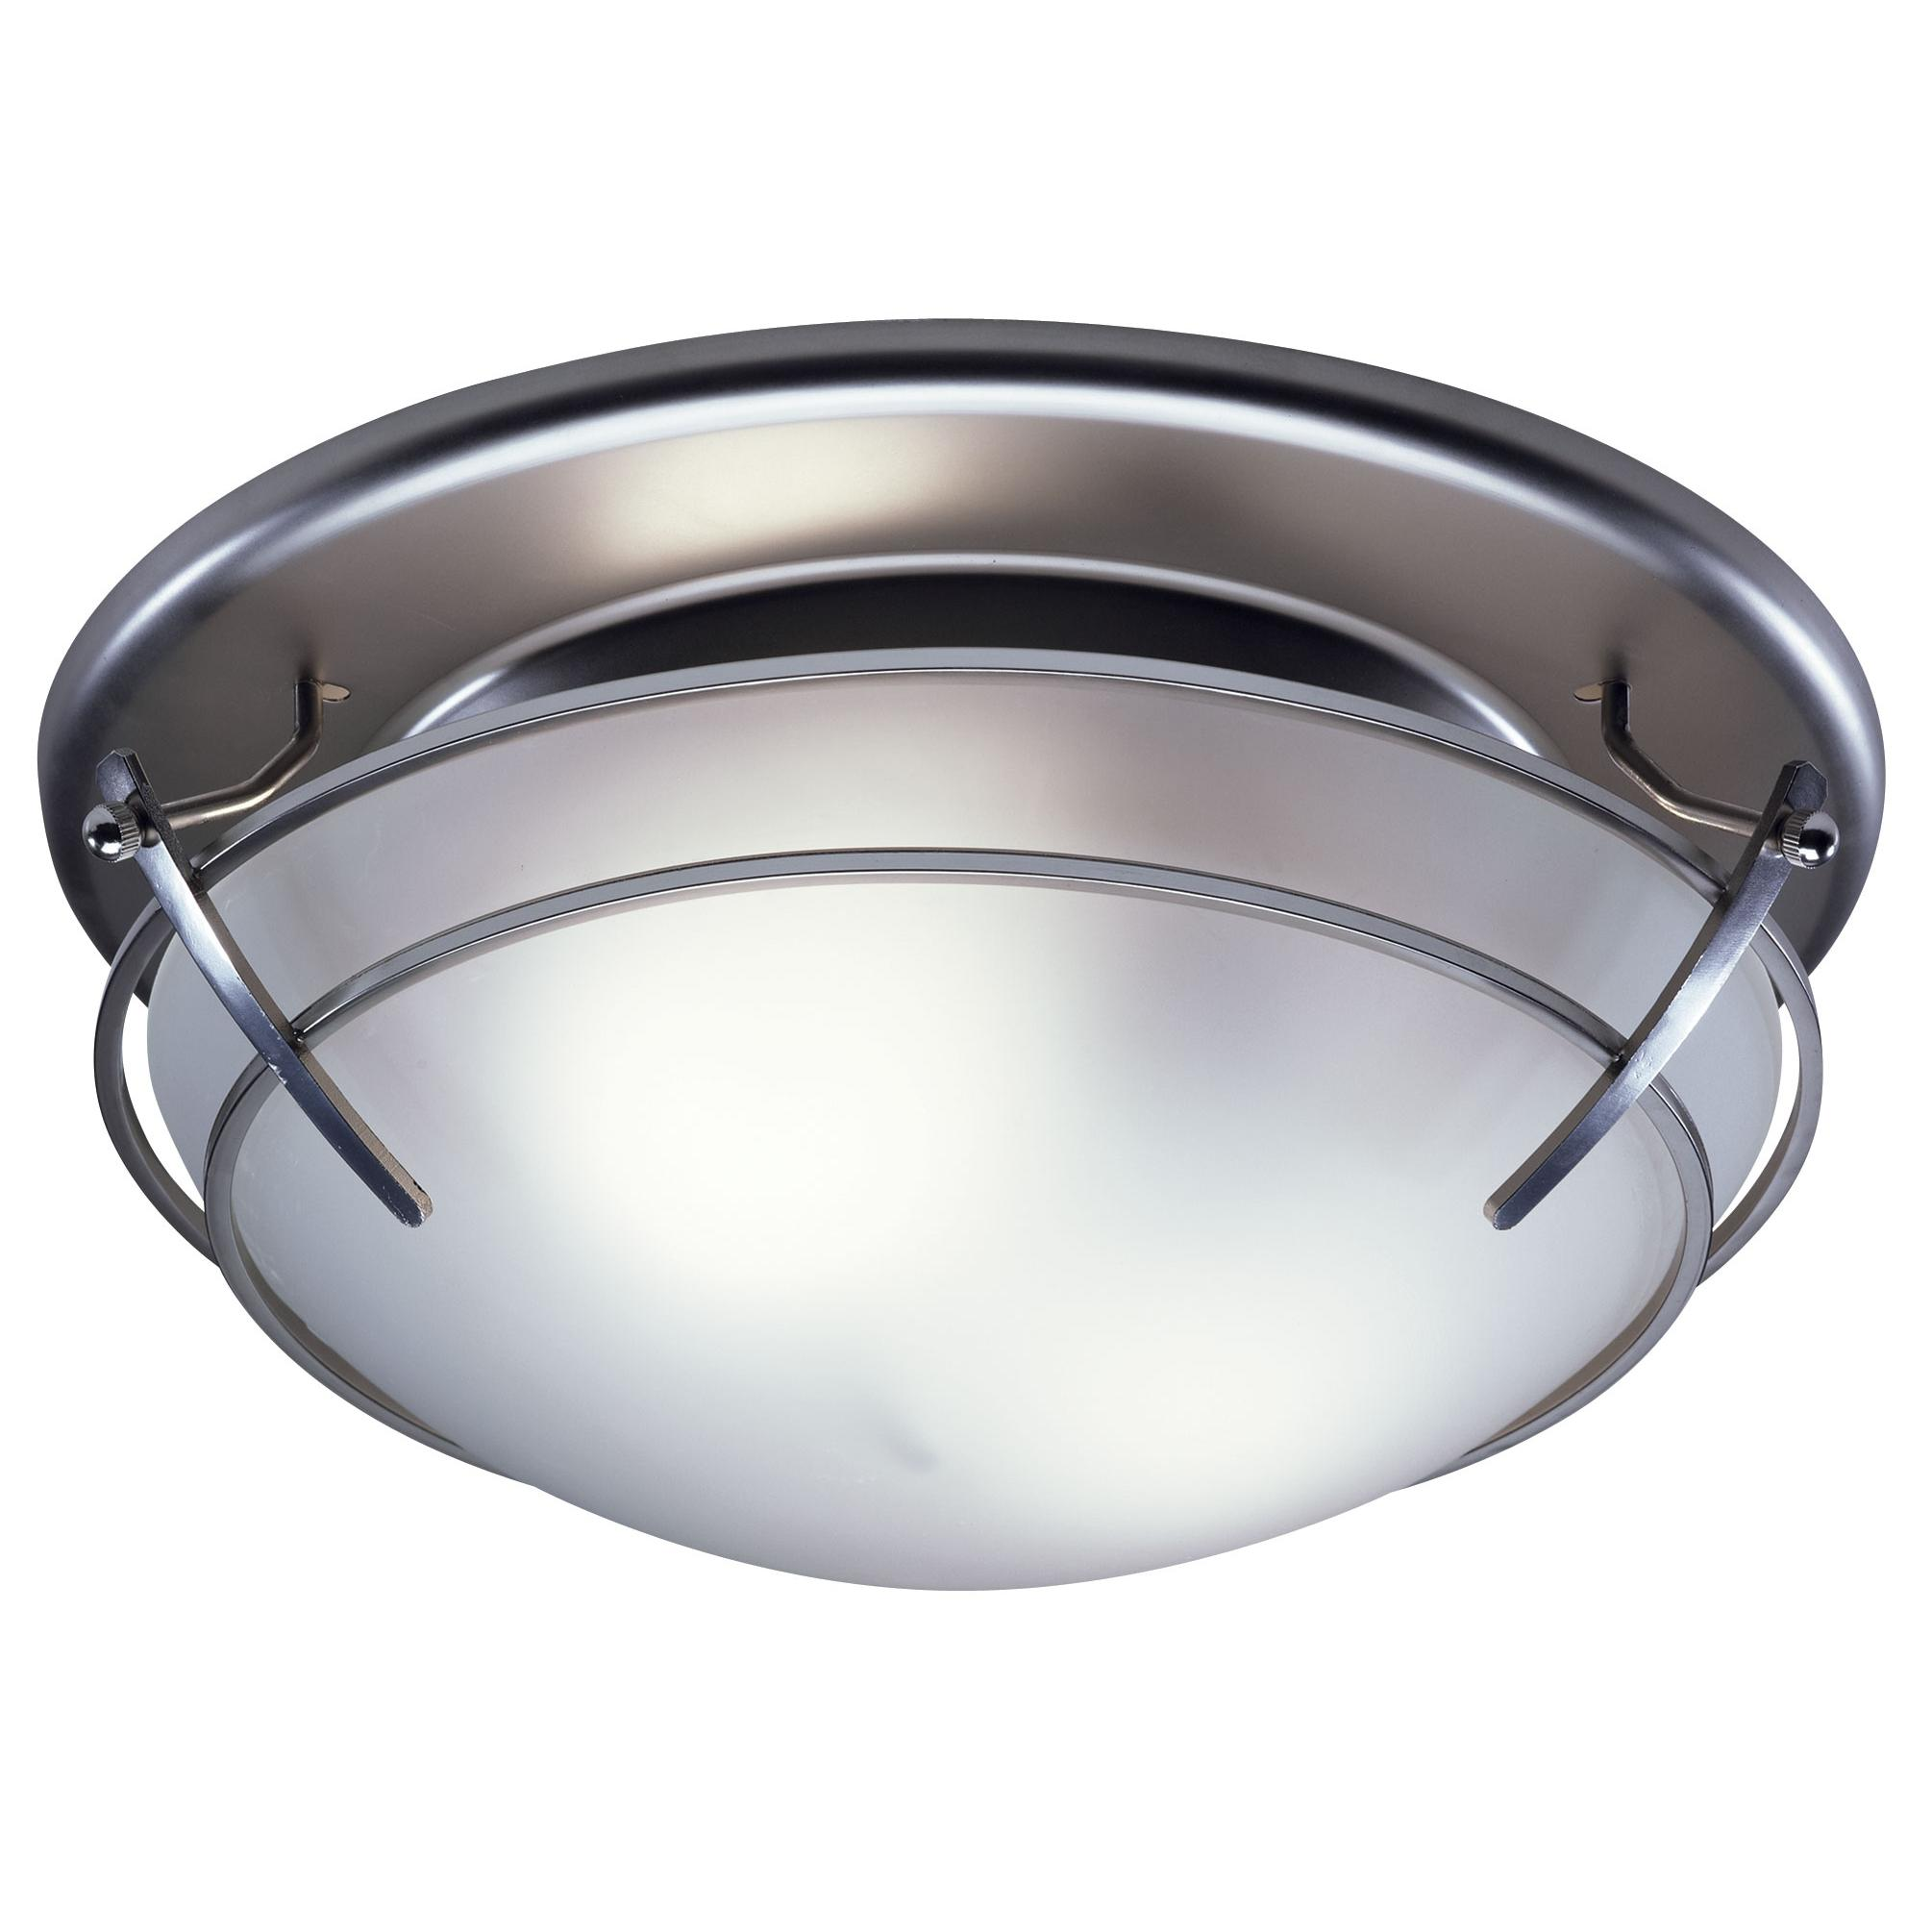 Broan 757sn decorative ventilation fan and light 80 cfm 25 sones broan 757sn decorative fanlight with glass globe 80 cfm satin nickel mozeypictures